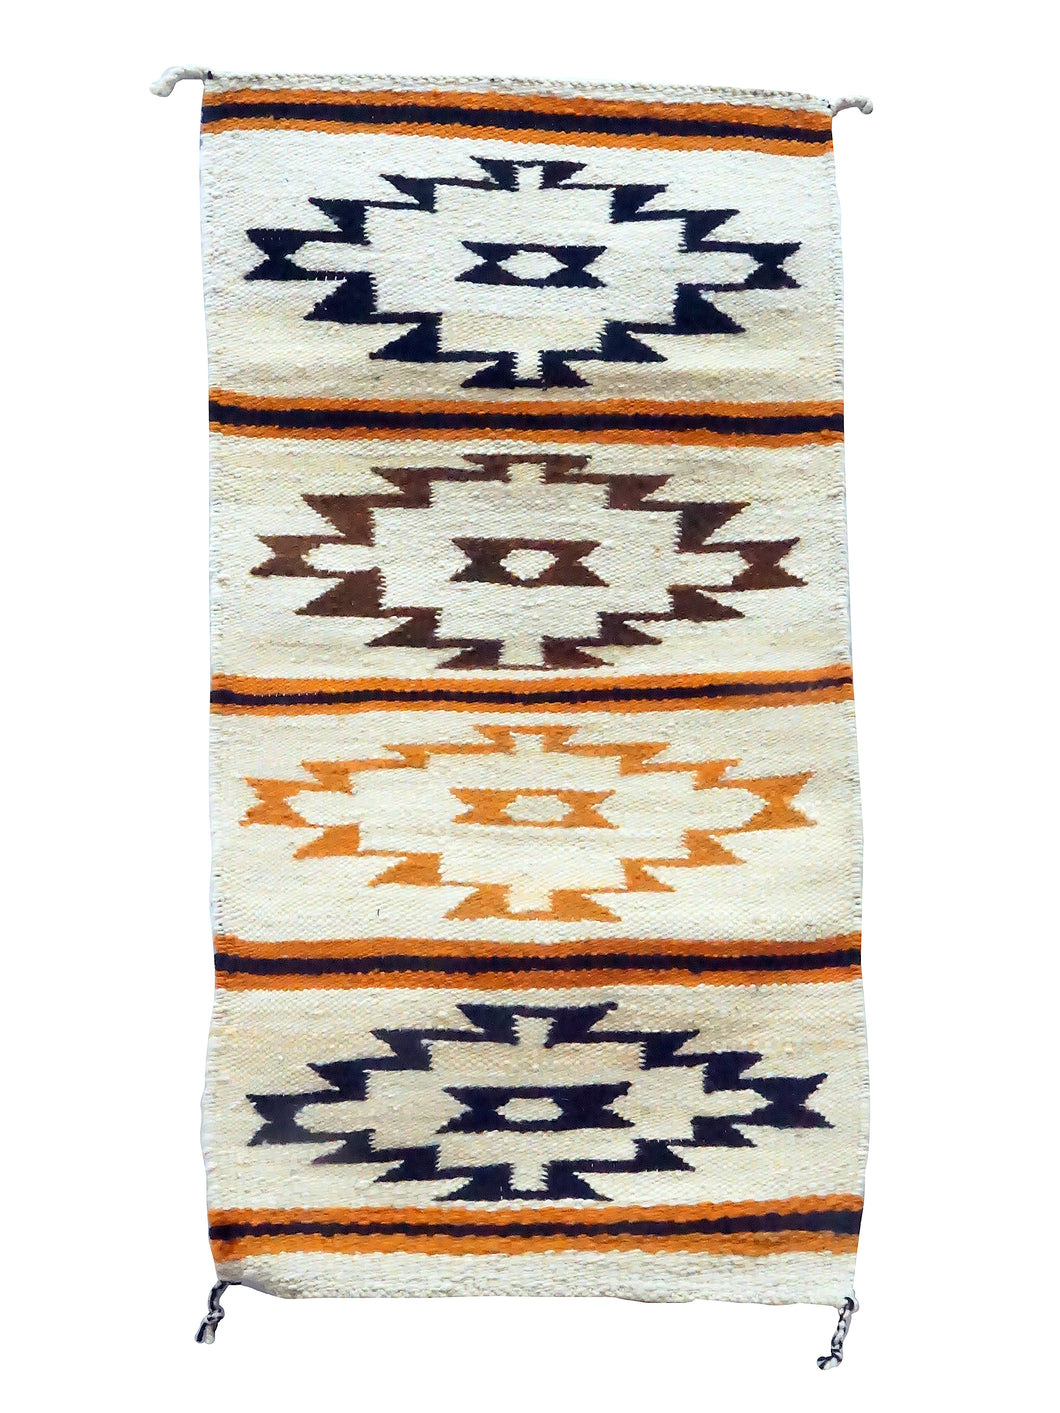 Gloria Francisco, Gallup Throw Rug, Orange, Browns, Navajo, 37 1/4